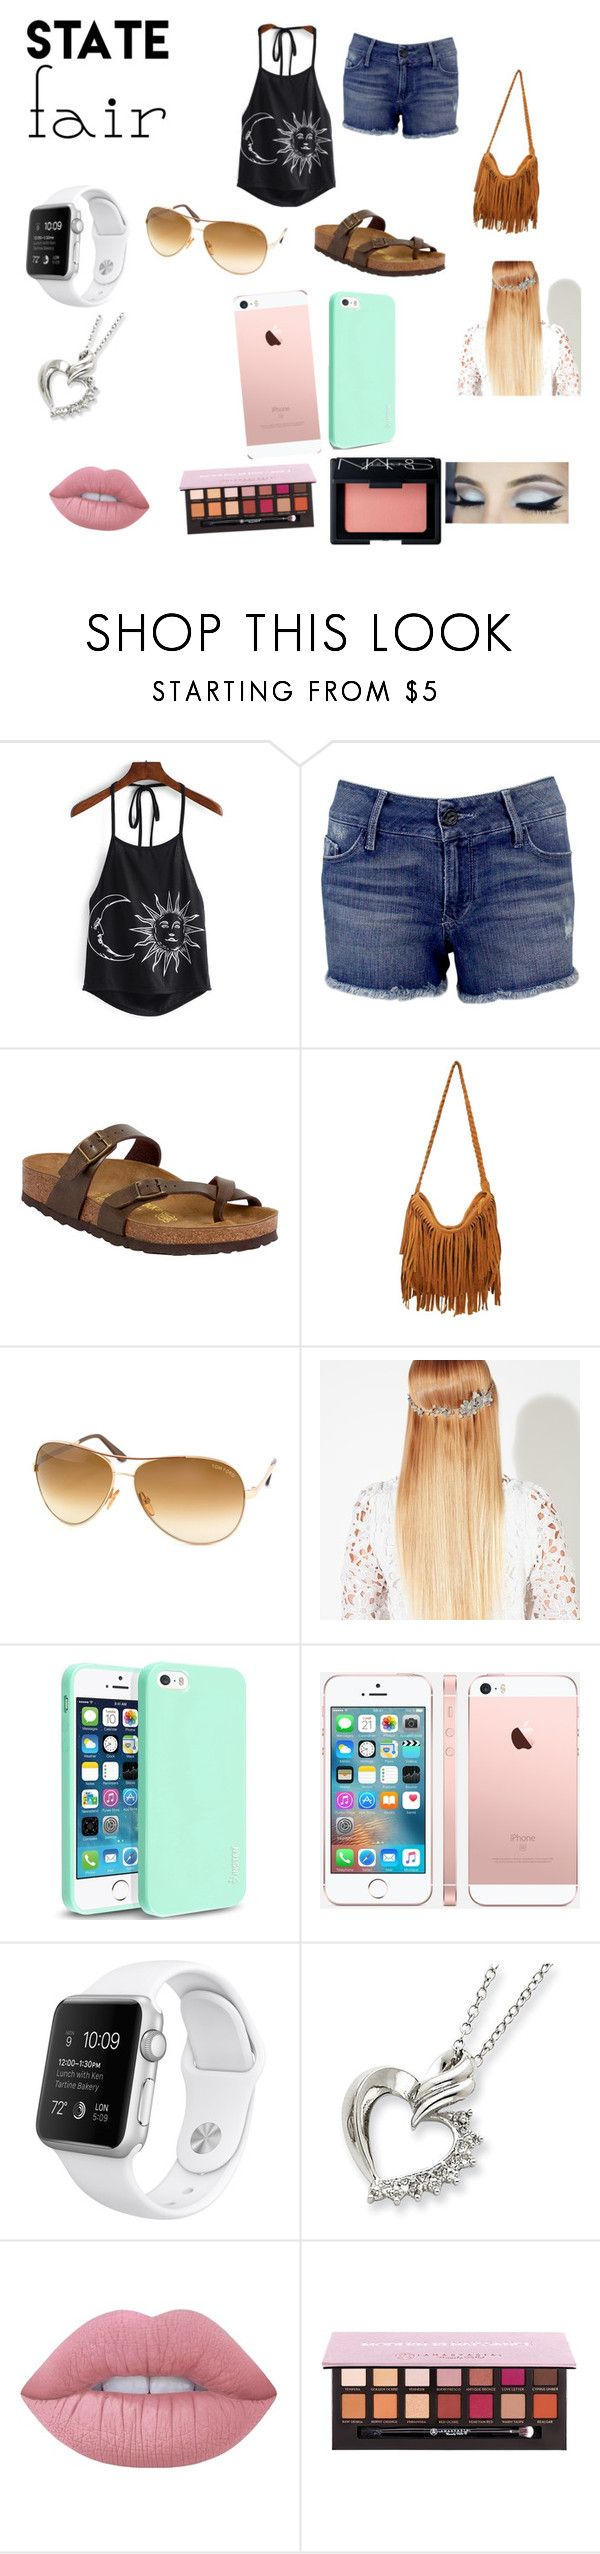 """State fair outfit"" by my-clothing-creations ❤ liked on Polyvore featuring Black Orchid, Birkenstock, Tom Ford, John Lewis, Insten, Lime Crime, Anastasia Beverly Hills, NARS Cosmetics, statefair and summerdate"